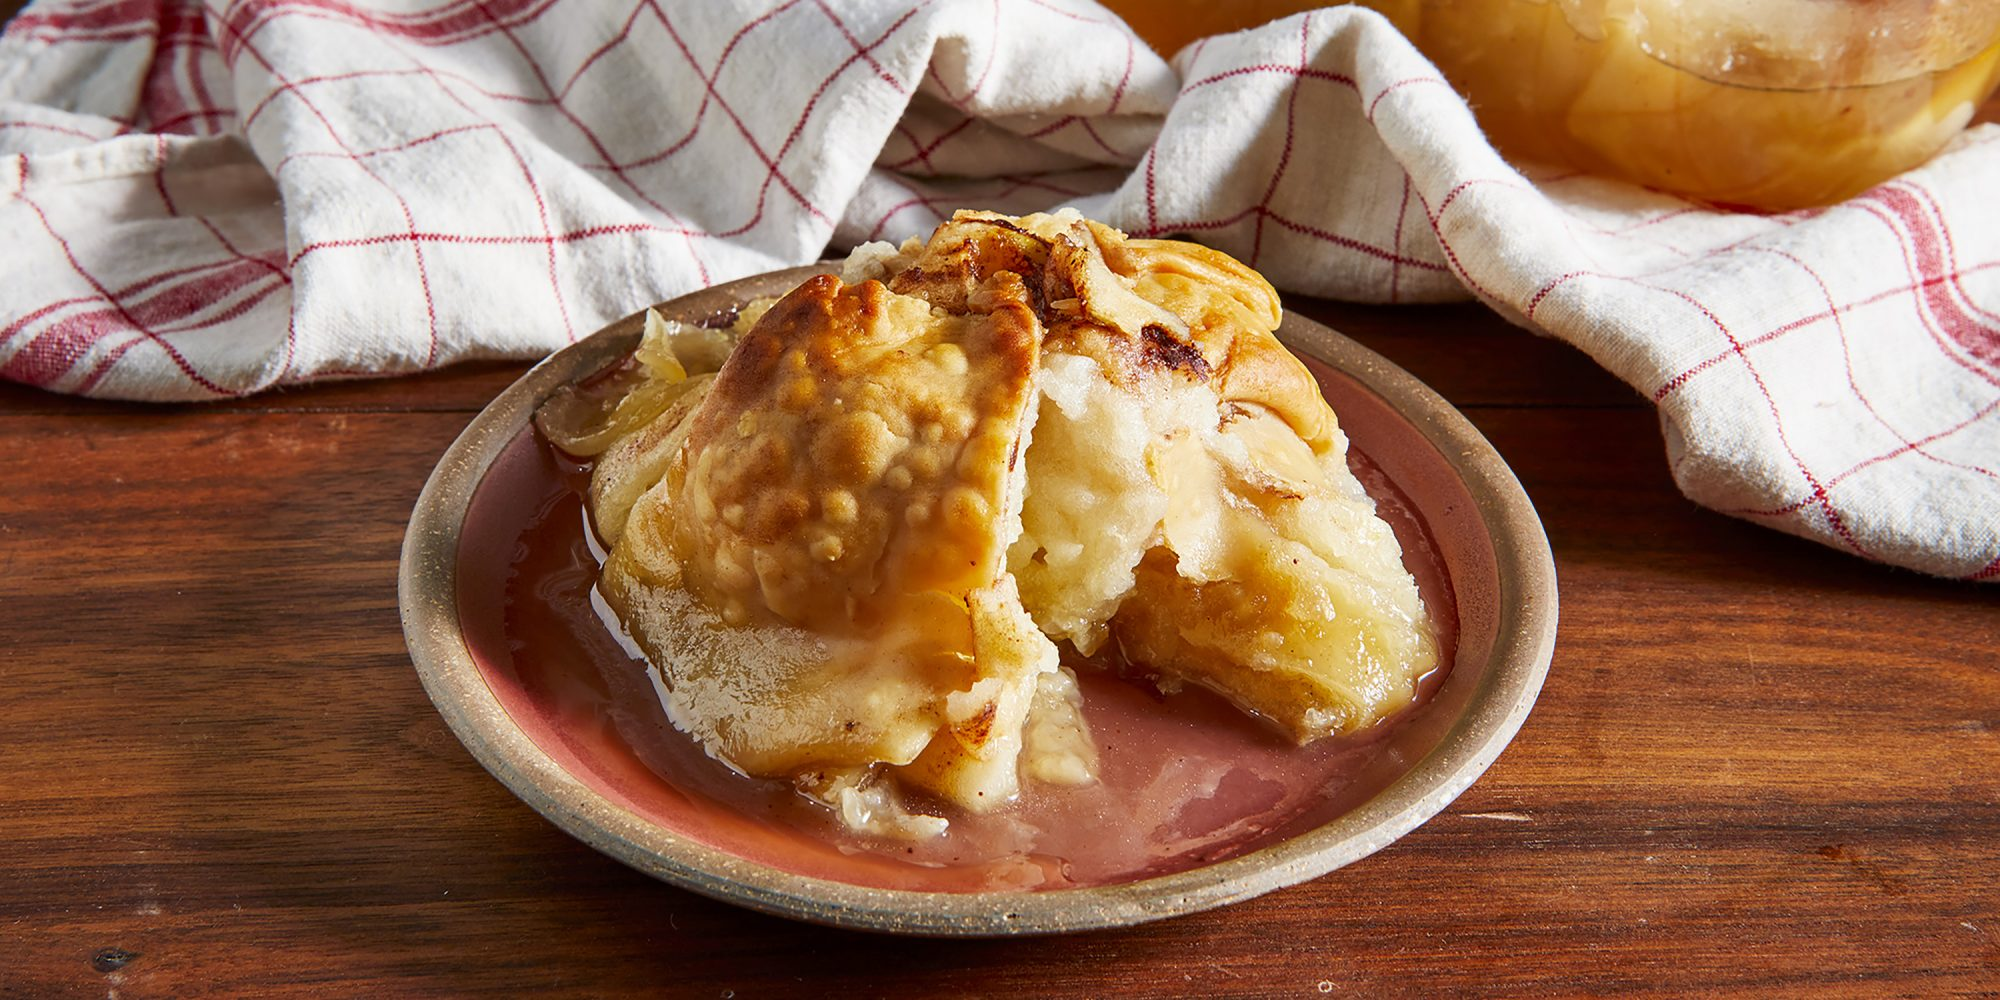 Looking into a single plated old fashioned apple dumpling with a bite taken out.